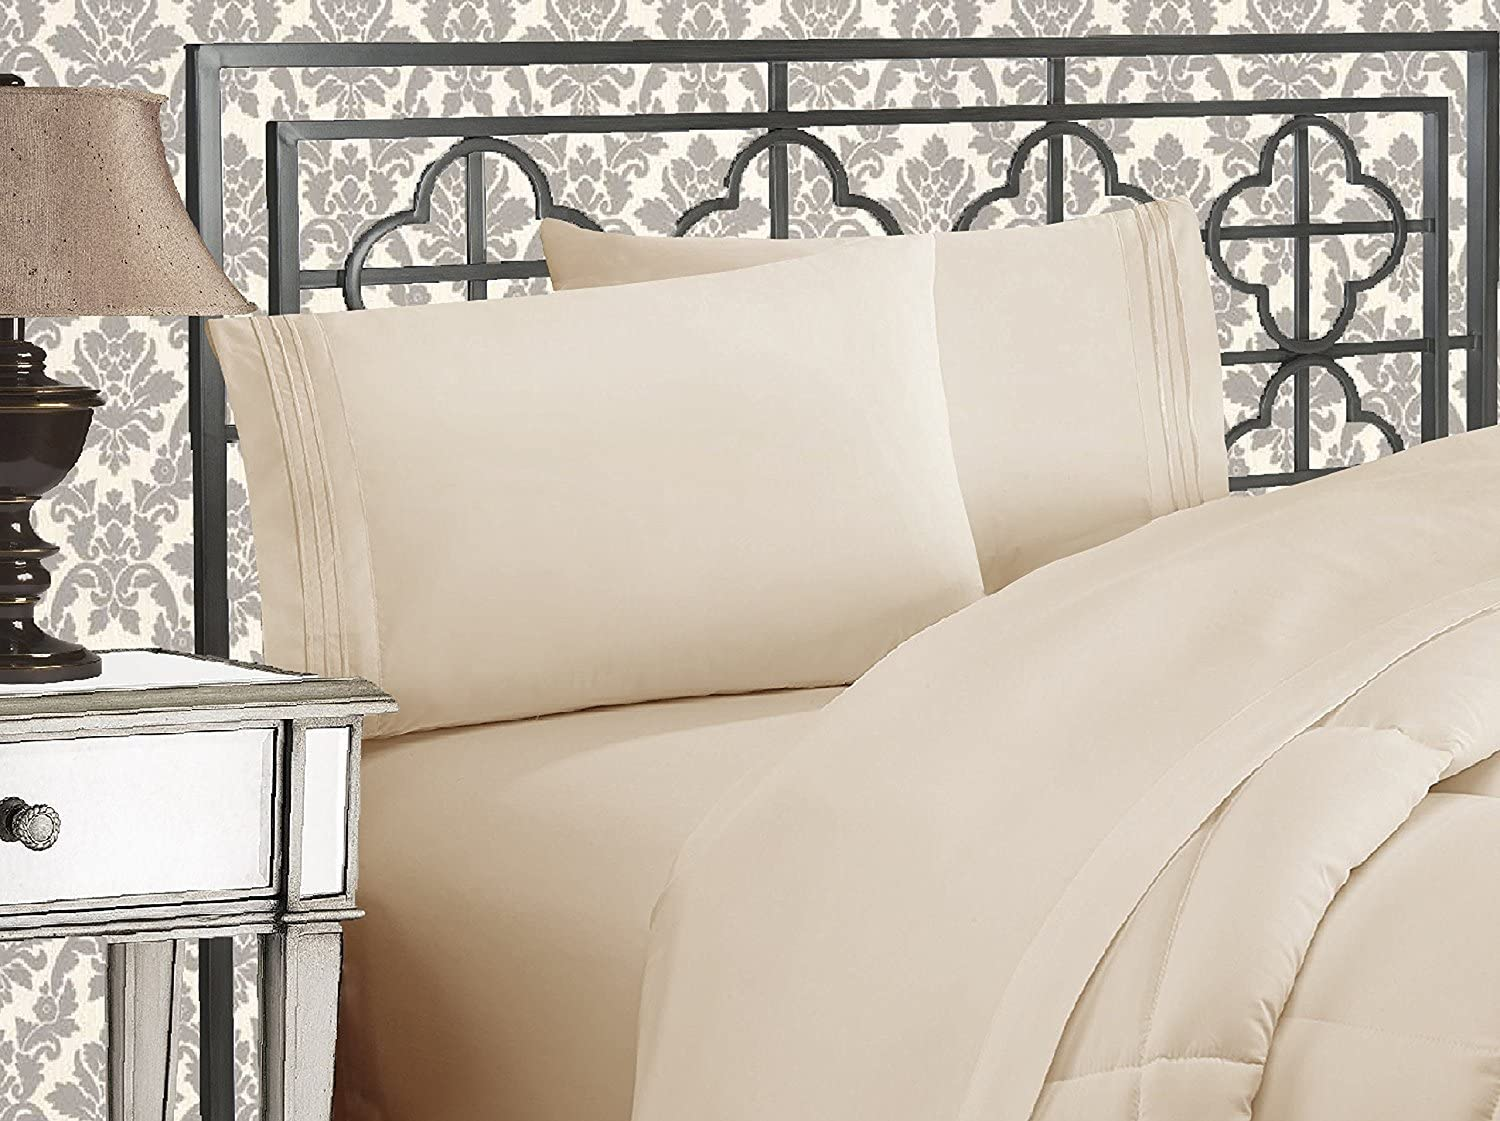 Elegant Comfort 1500 Thread Count Wrinkle & Fade Resistant Egyptian Quality Ultra Soft Luxurious 4-Piece Bed Sheet Set with Deep Pockets, Queen Beige